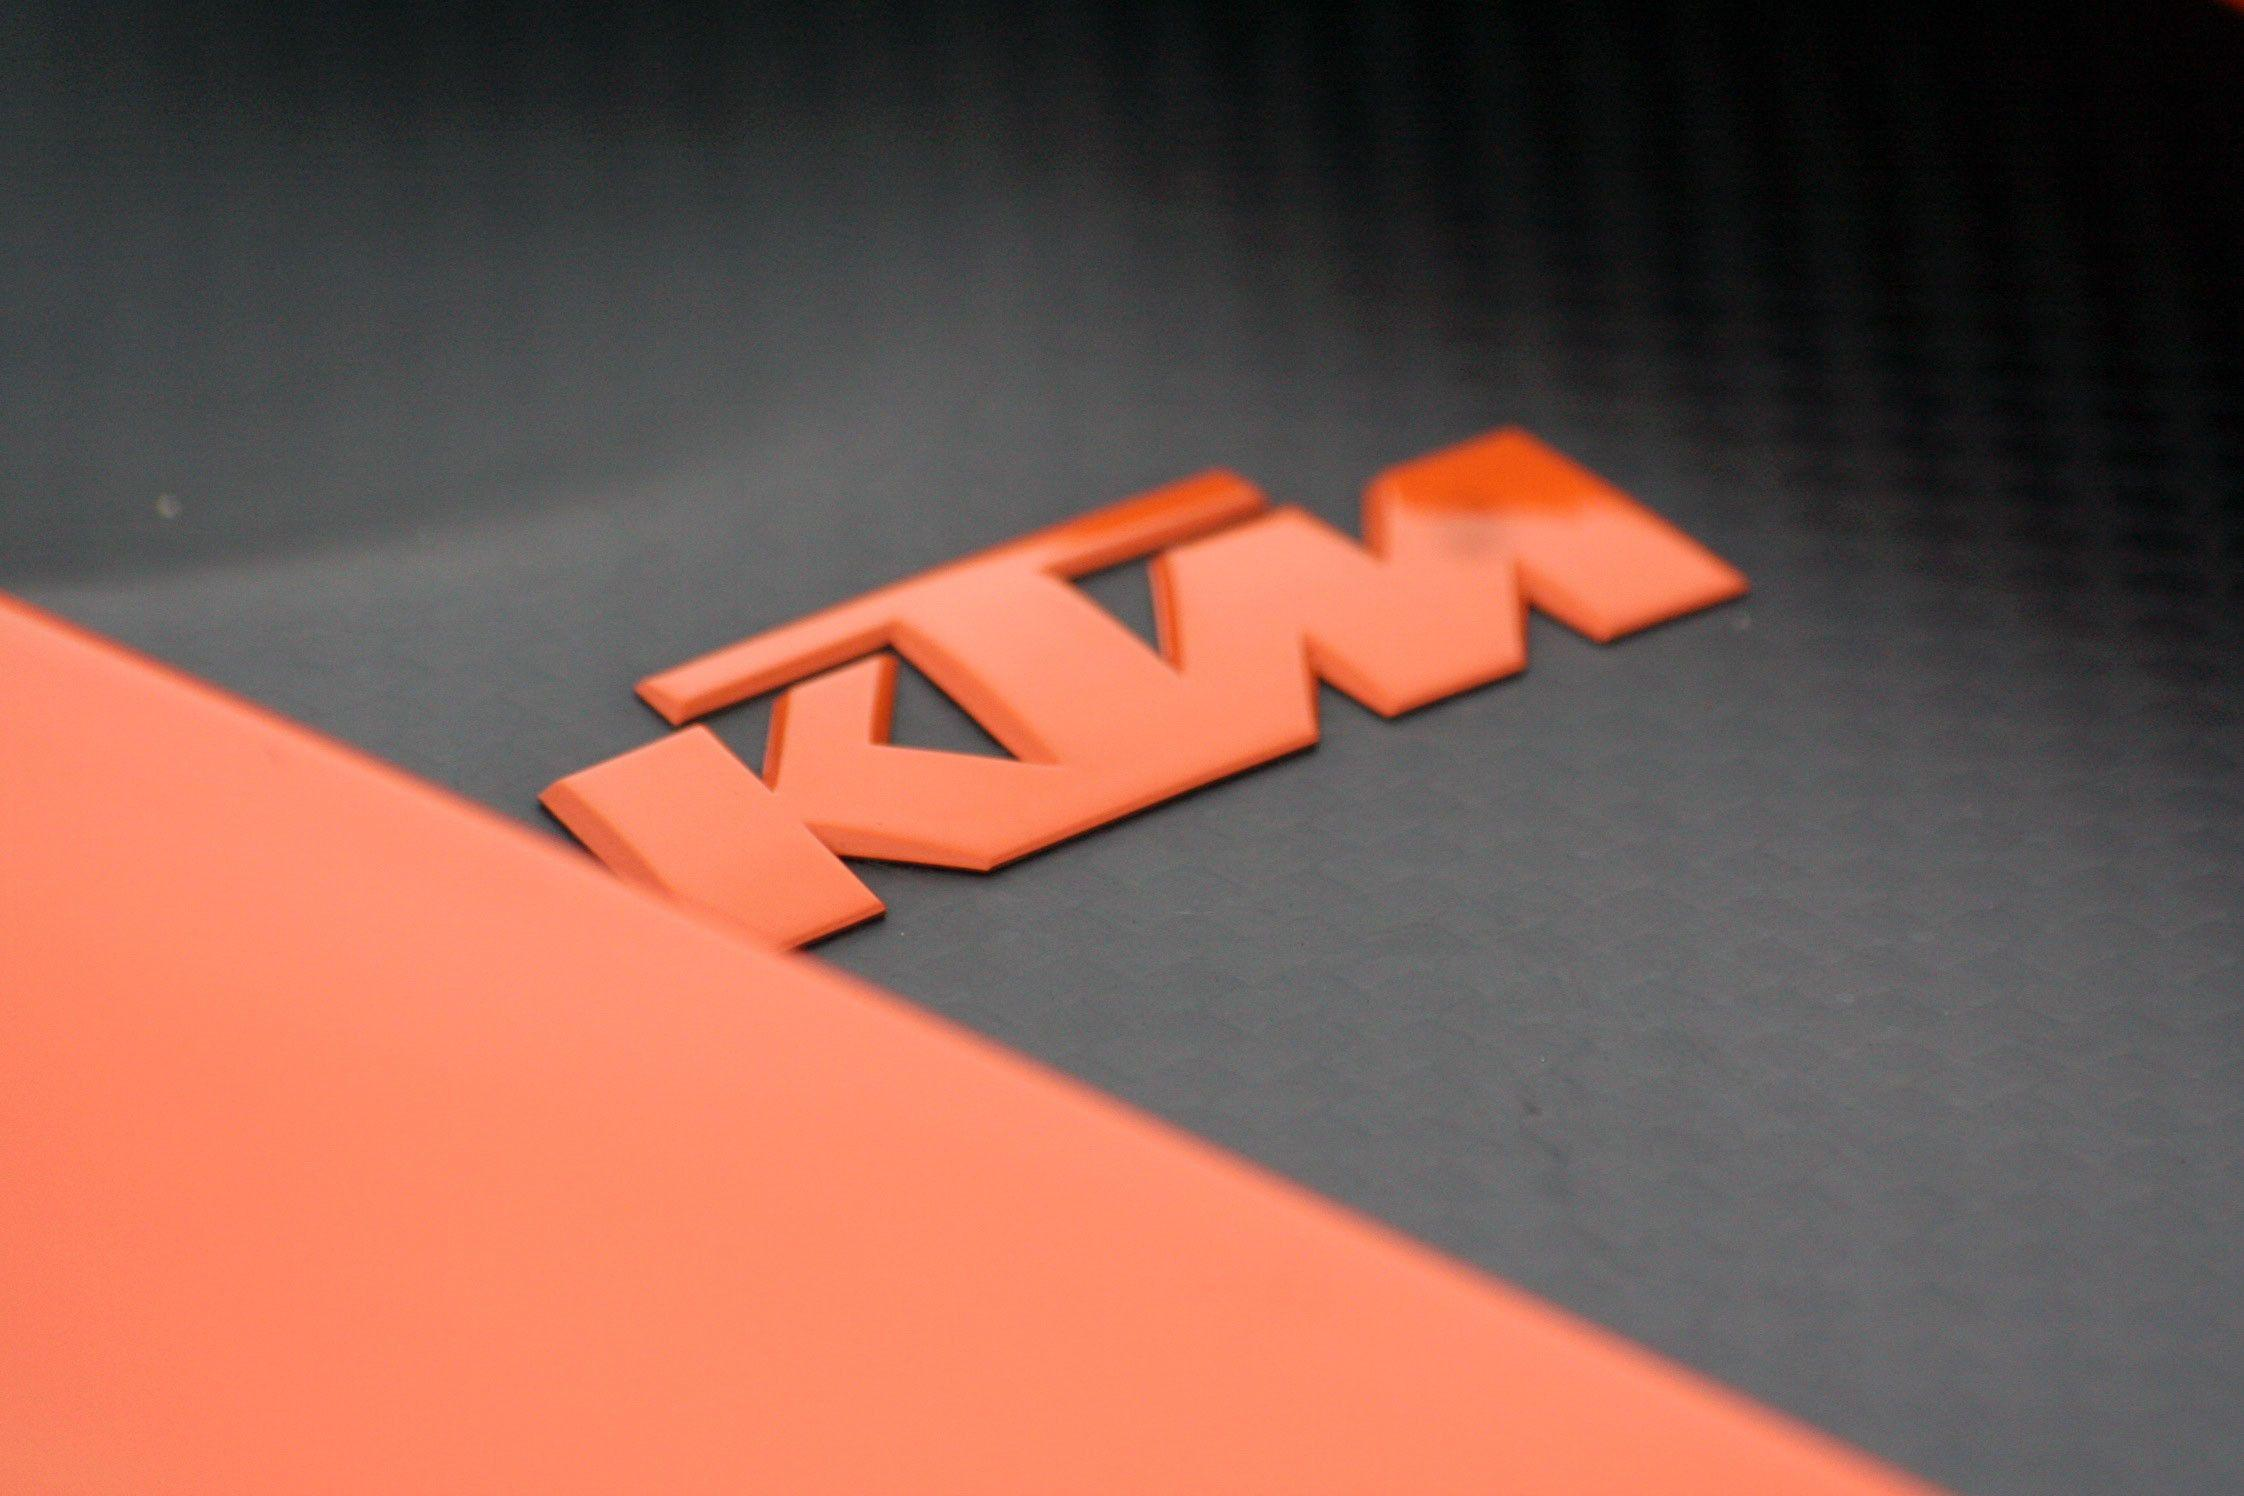 Ktm Logo Hd Wallpapers Wallpaper Cave